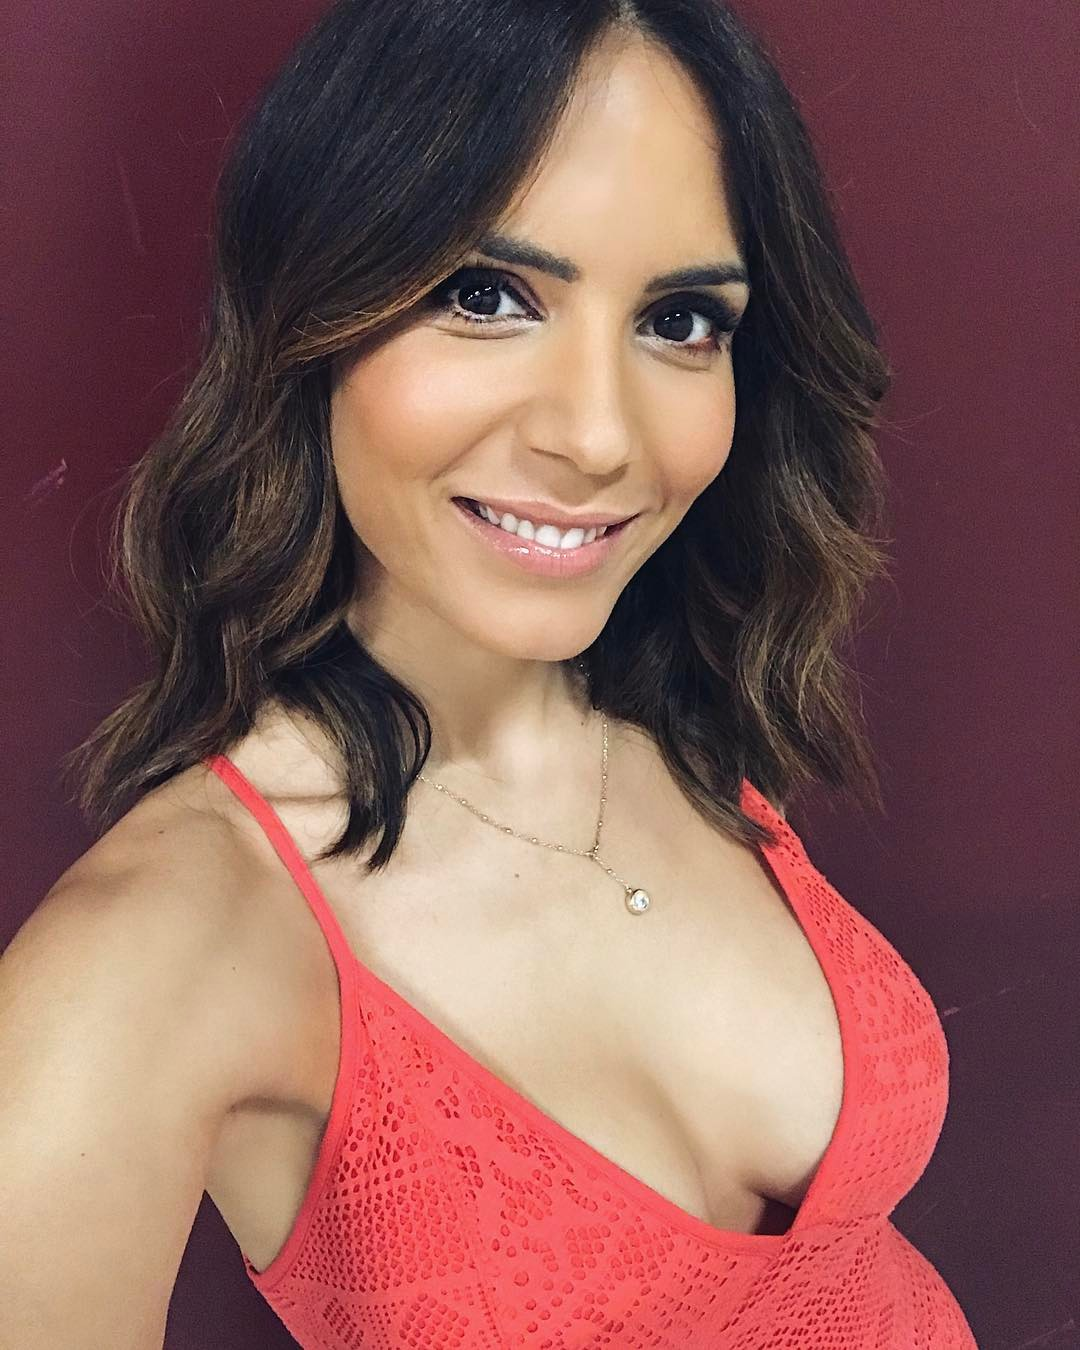 Olívia Ortiz Looking Pretty and Cute